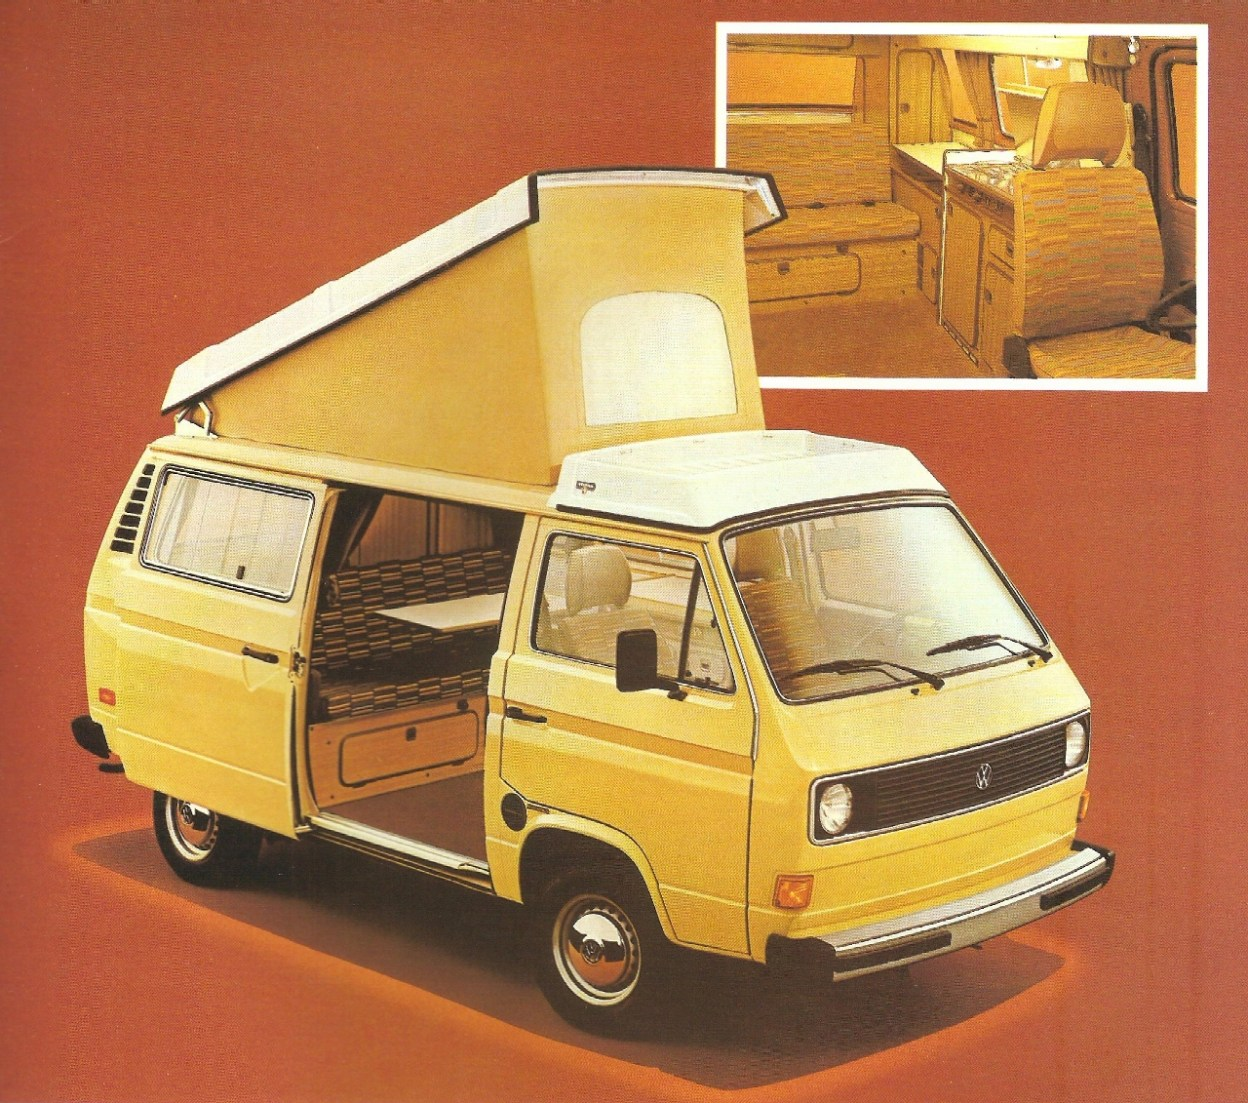 Where Can I Buy A Volkswagen Bus: Buying A Vanagon: Part I